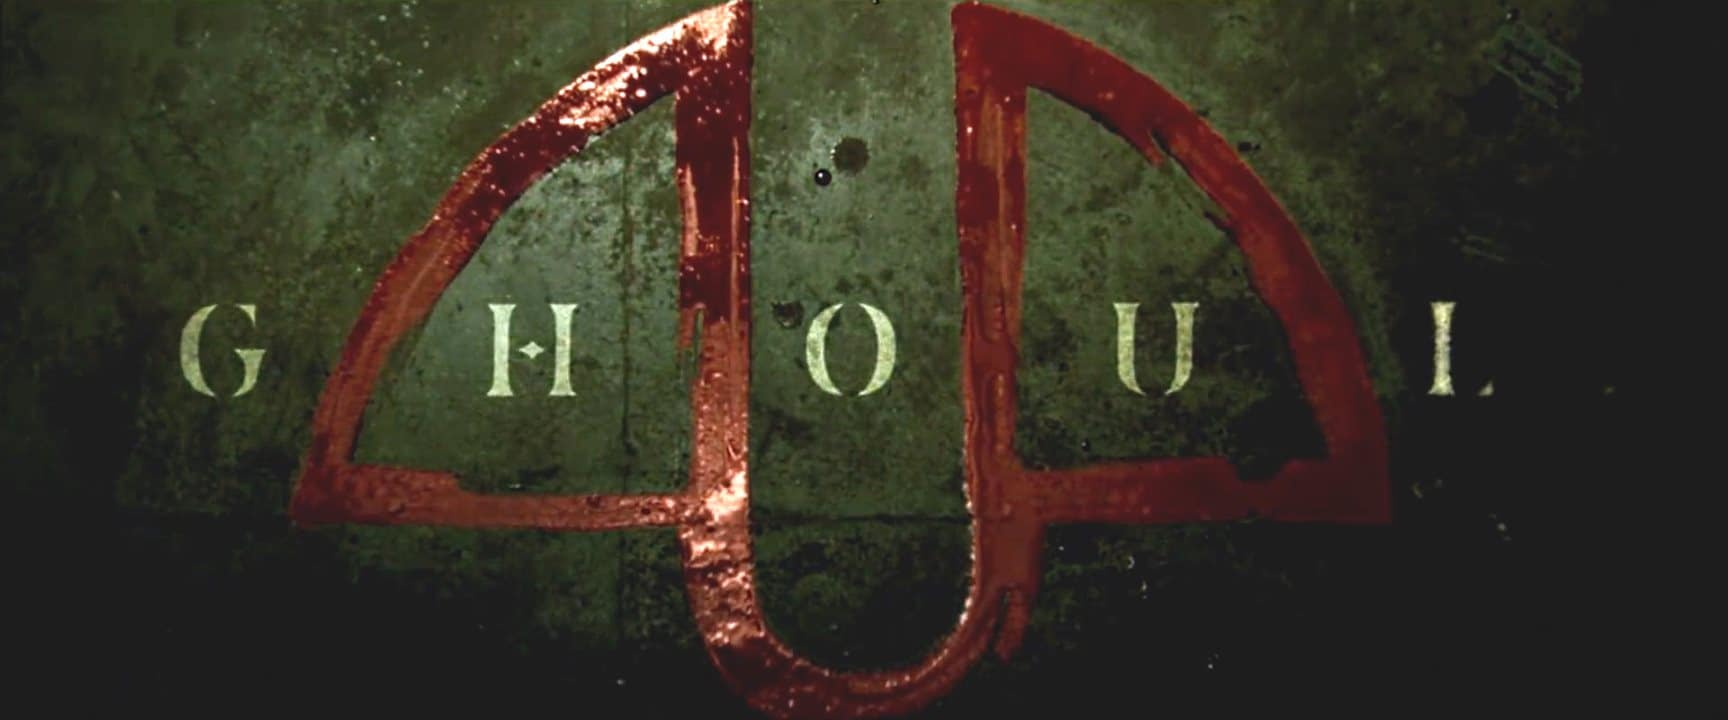 Ghoul Trailer Explains Meaning of New Netflix Series